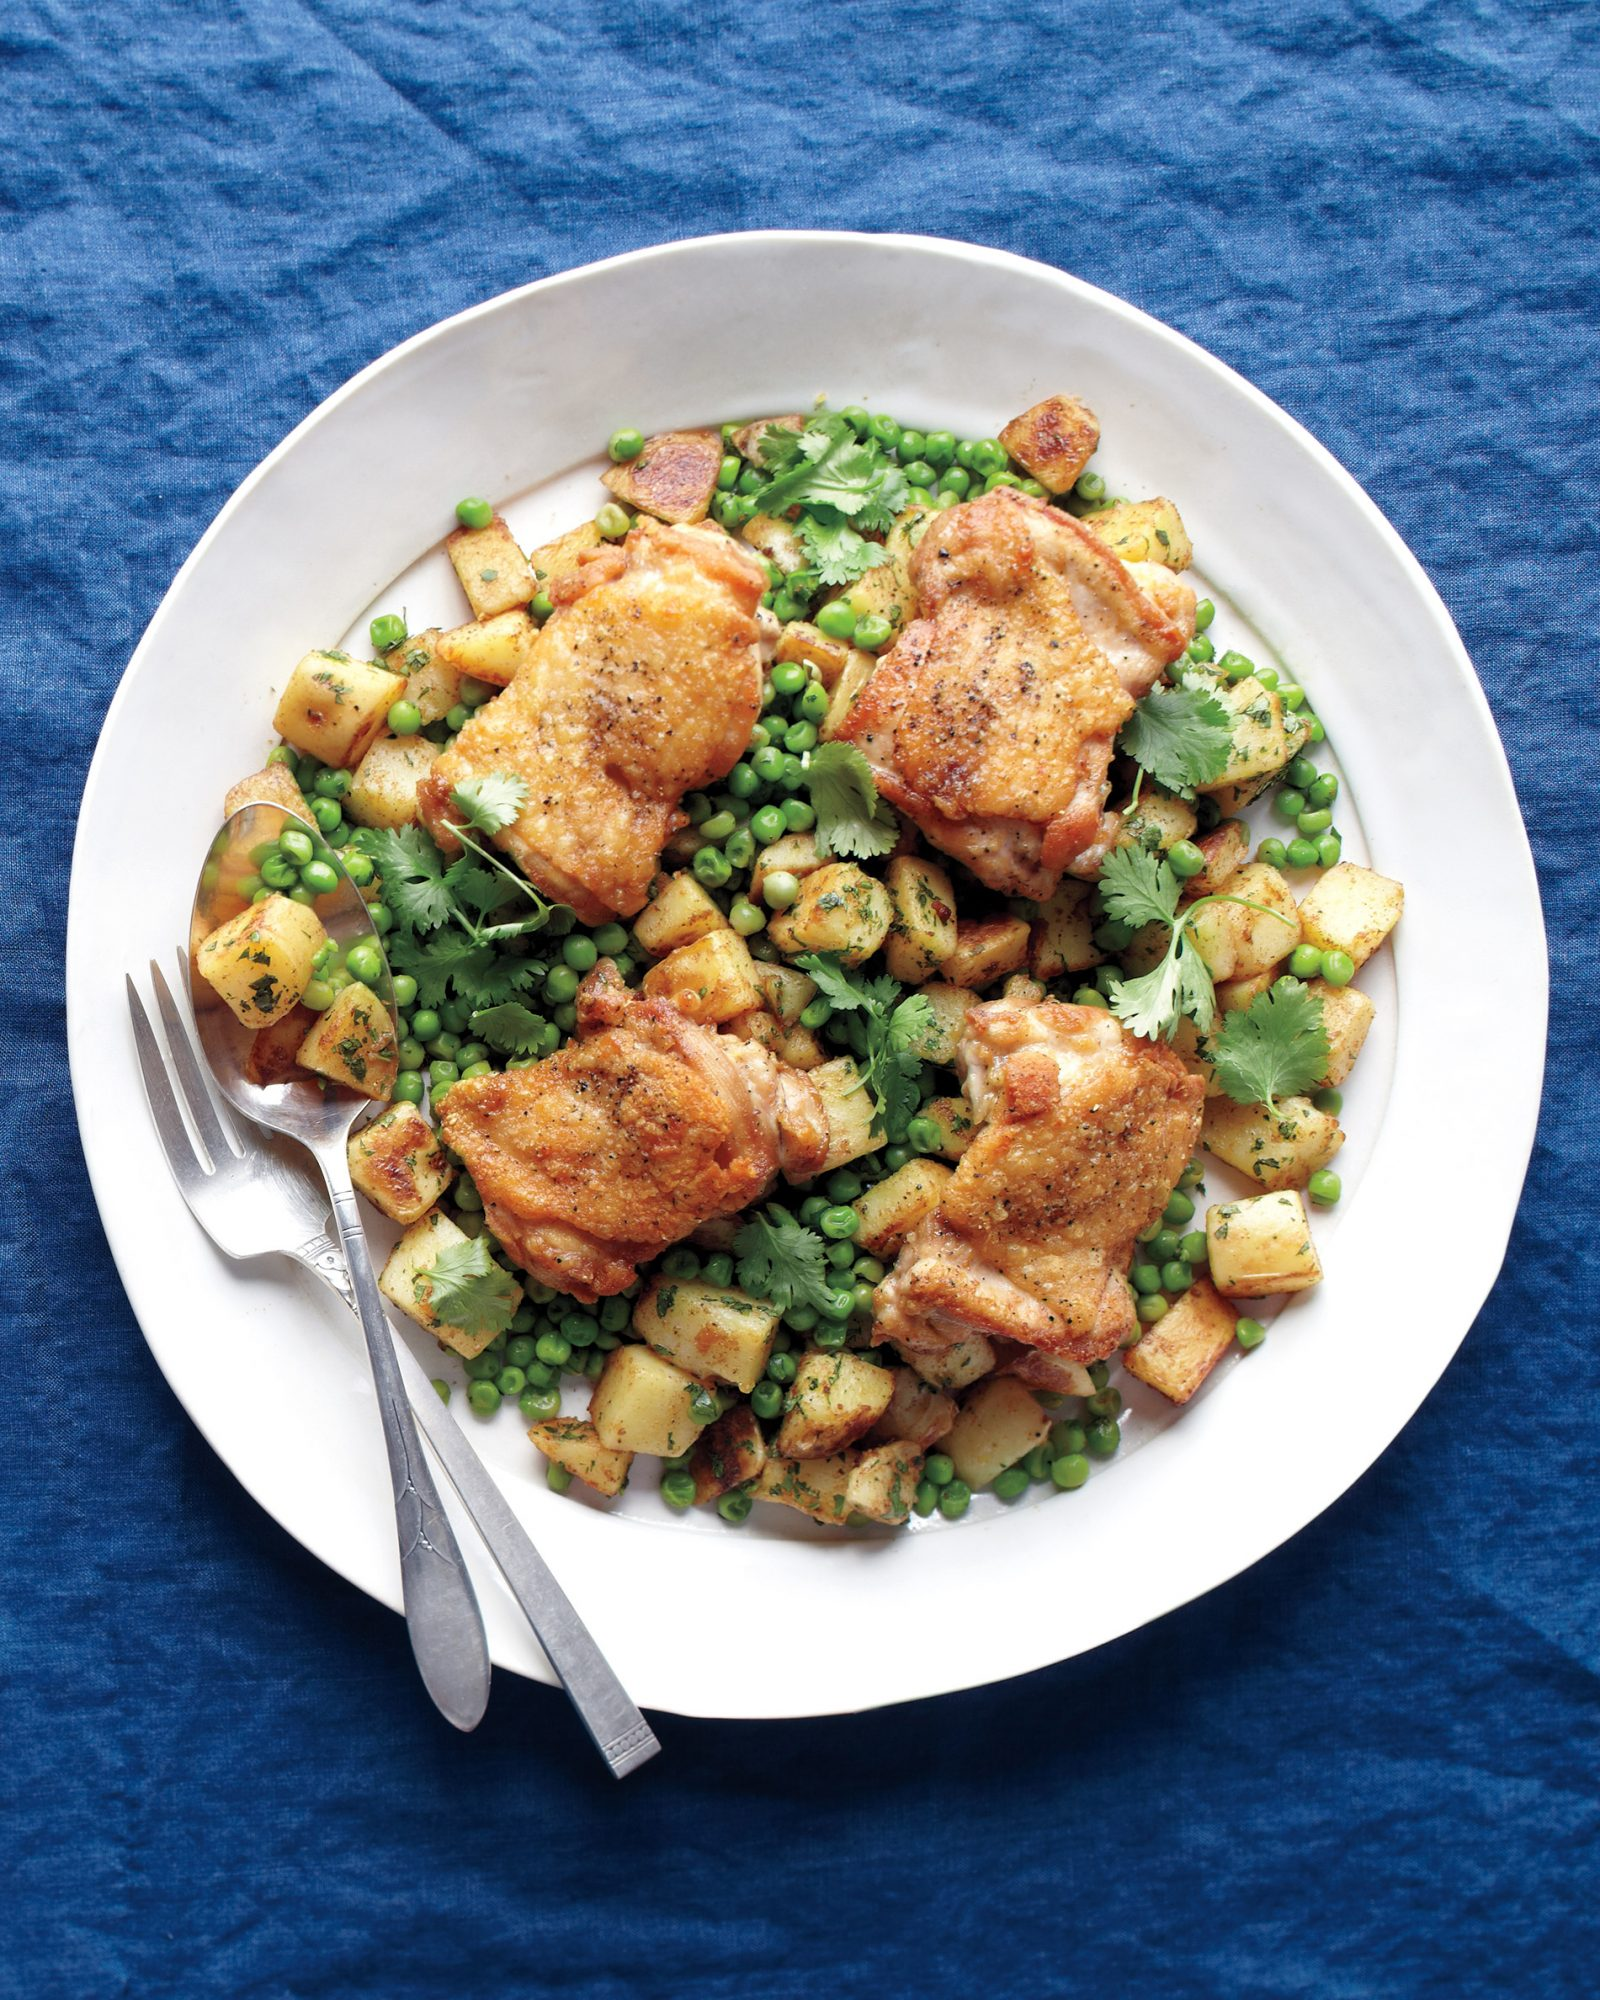 Spiced Chicken with Potatoes and Peas